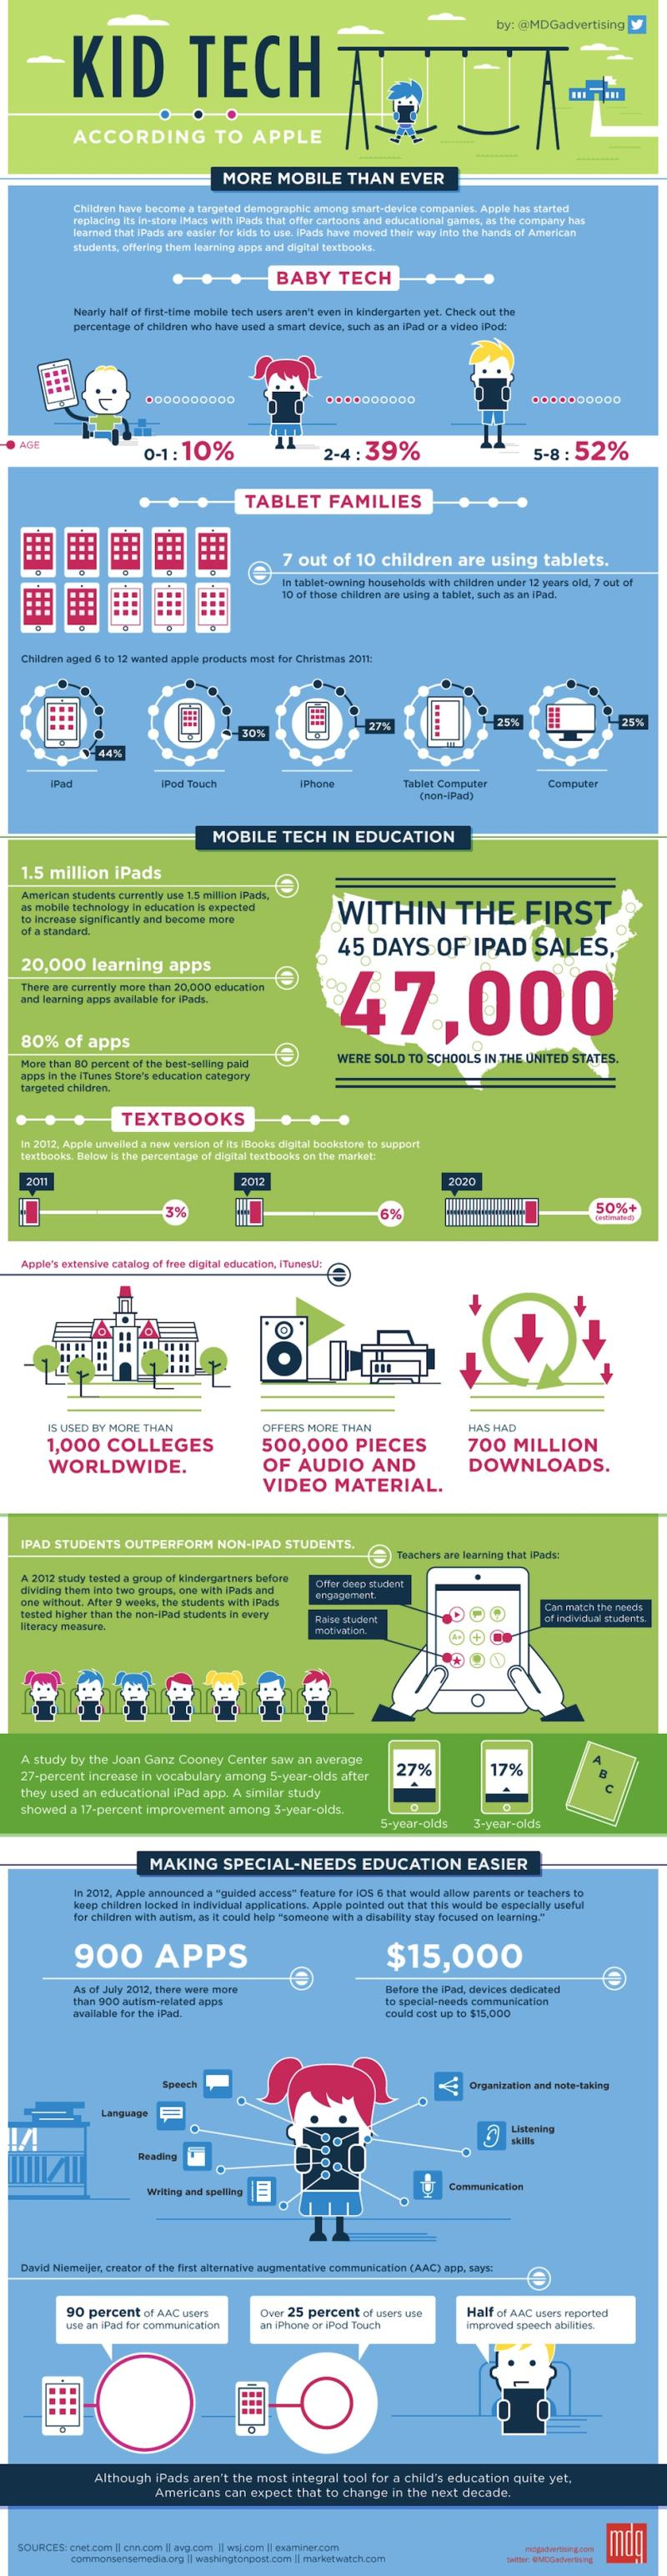 Kids Go Gaga Over Tablets [INFOGRAPHIC]